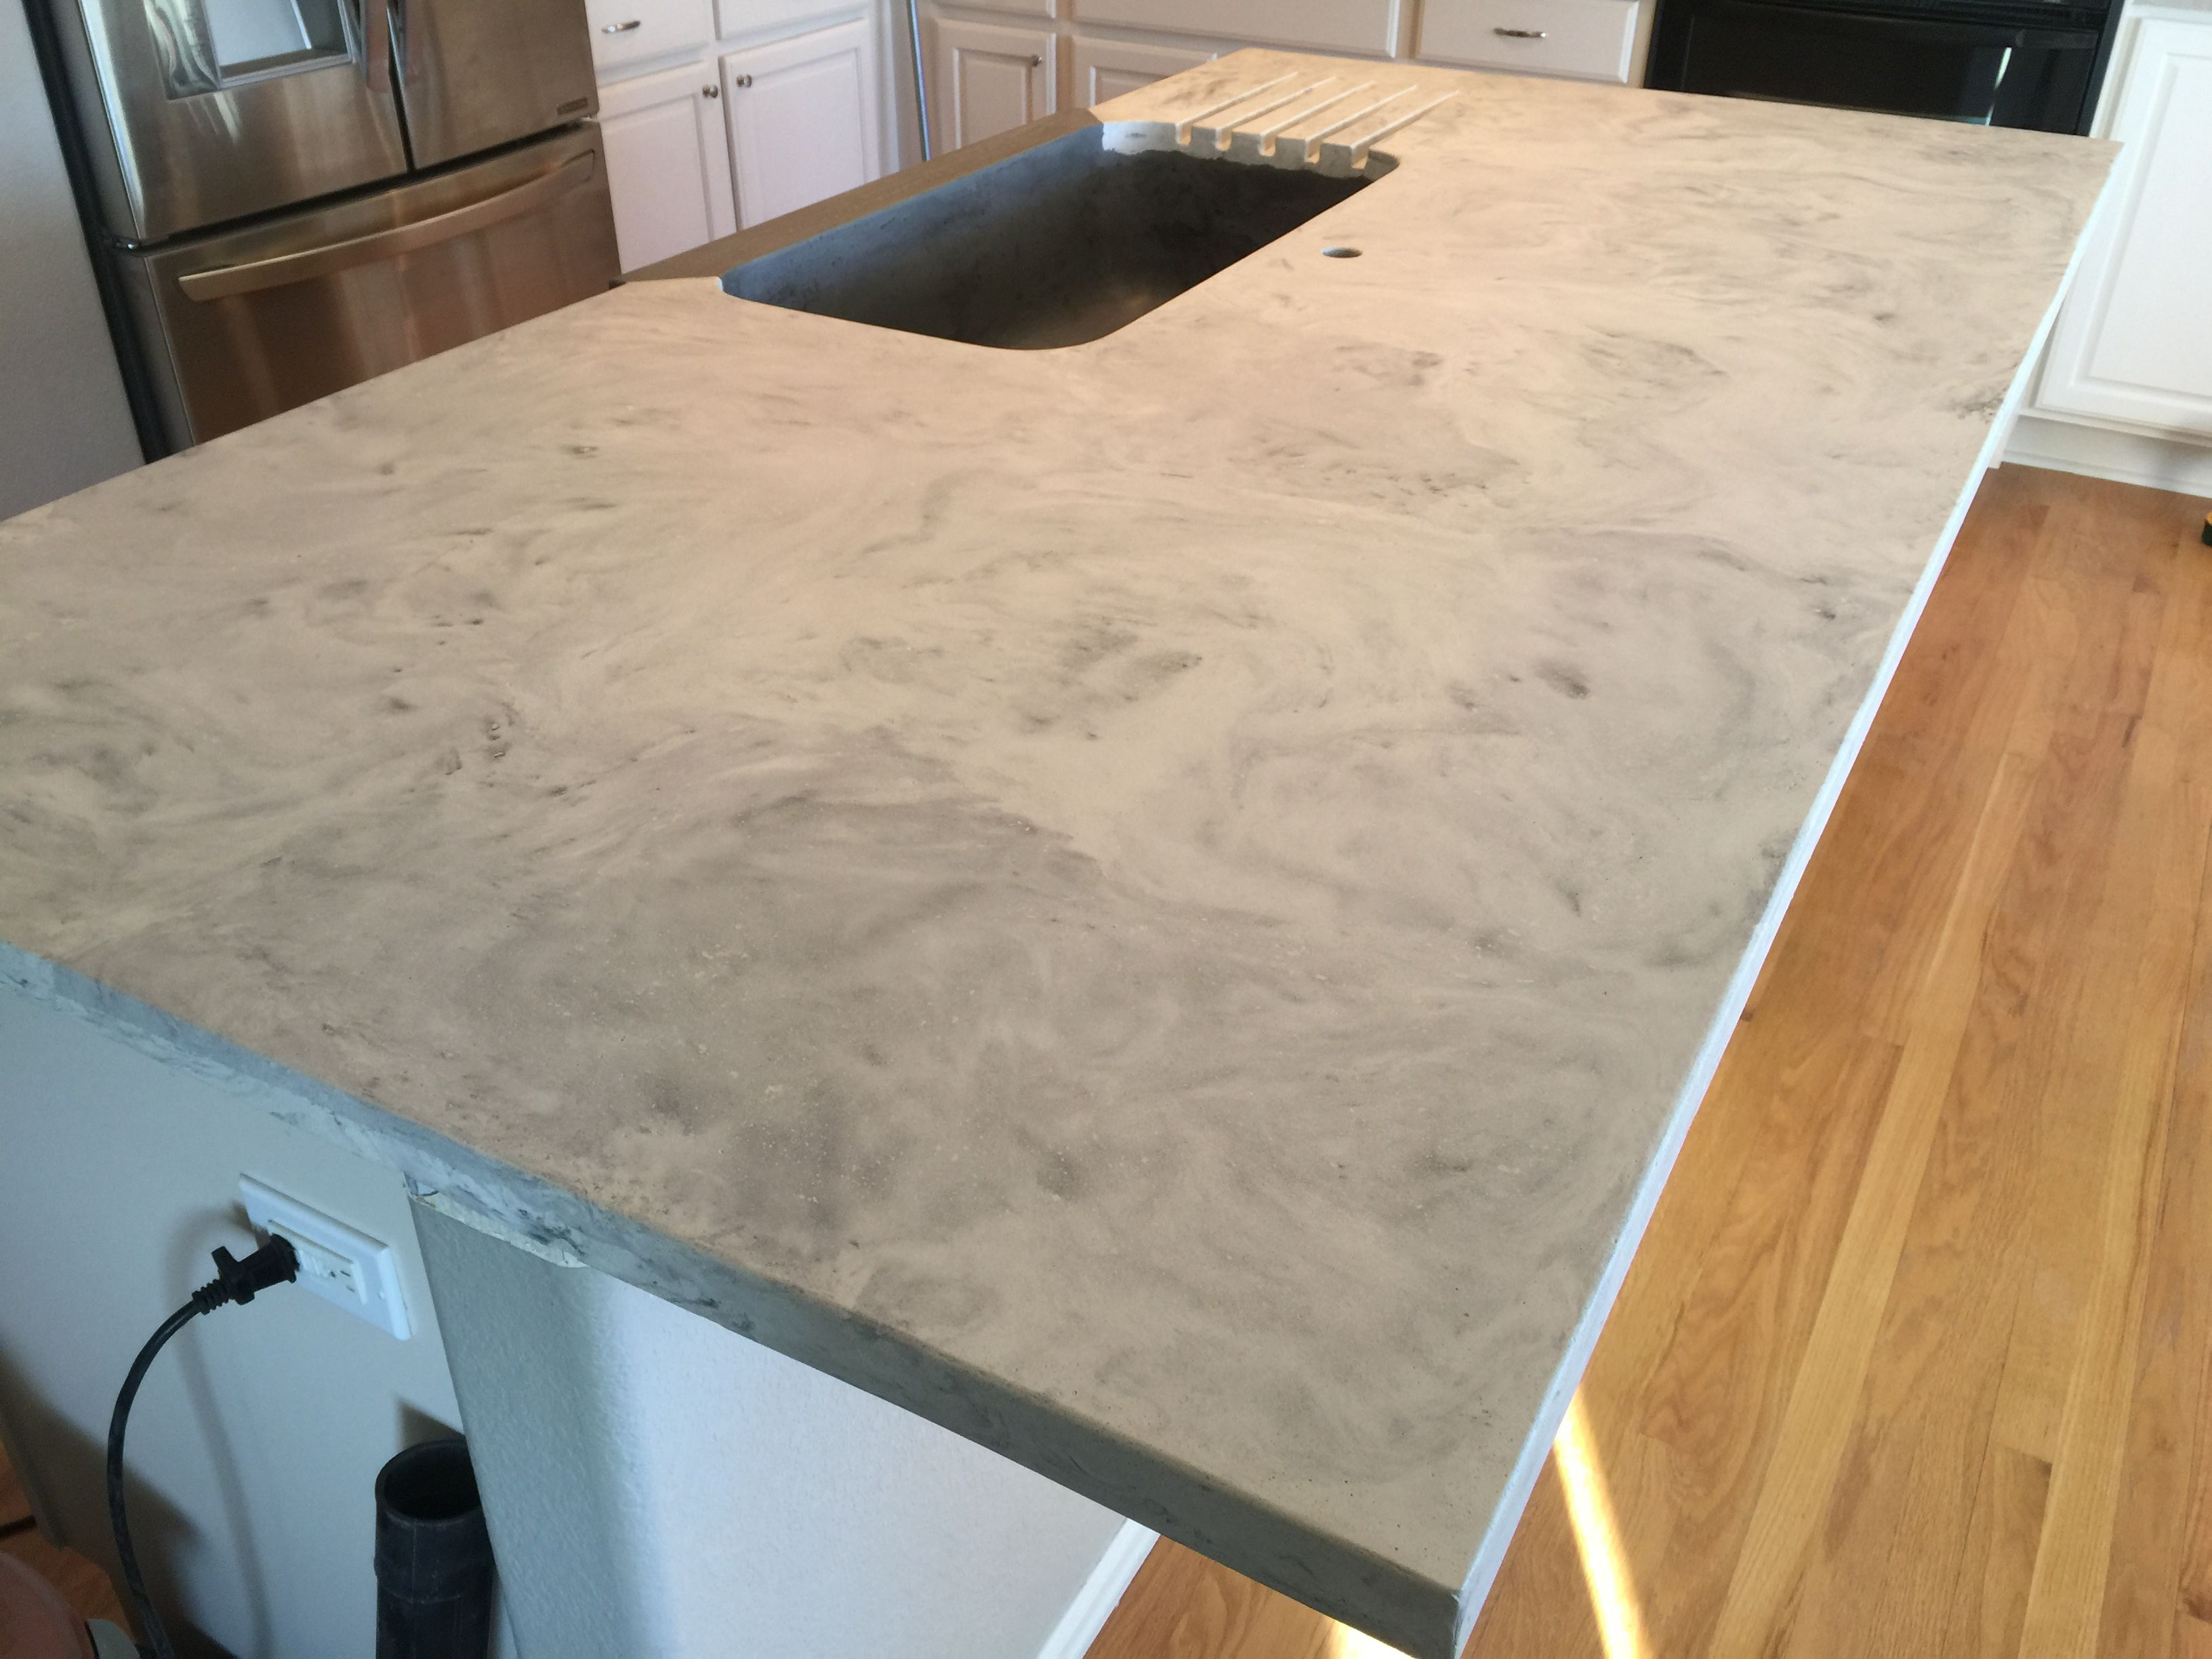 Custom Concrete Kitchen Island With Integrated Concrete Farm Sink